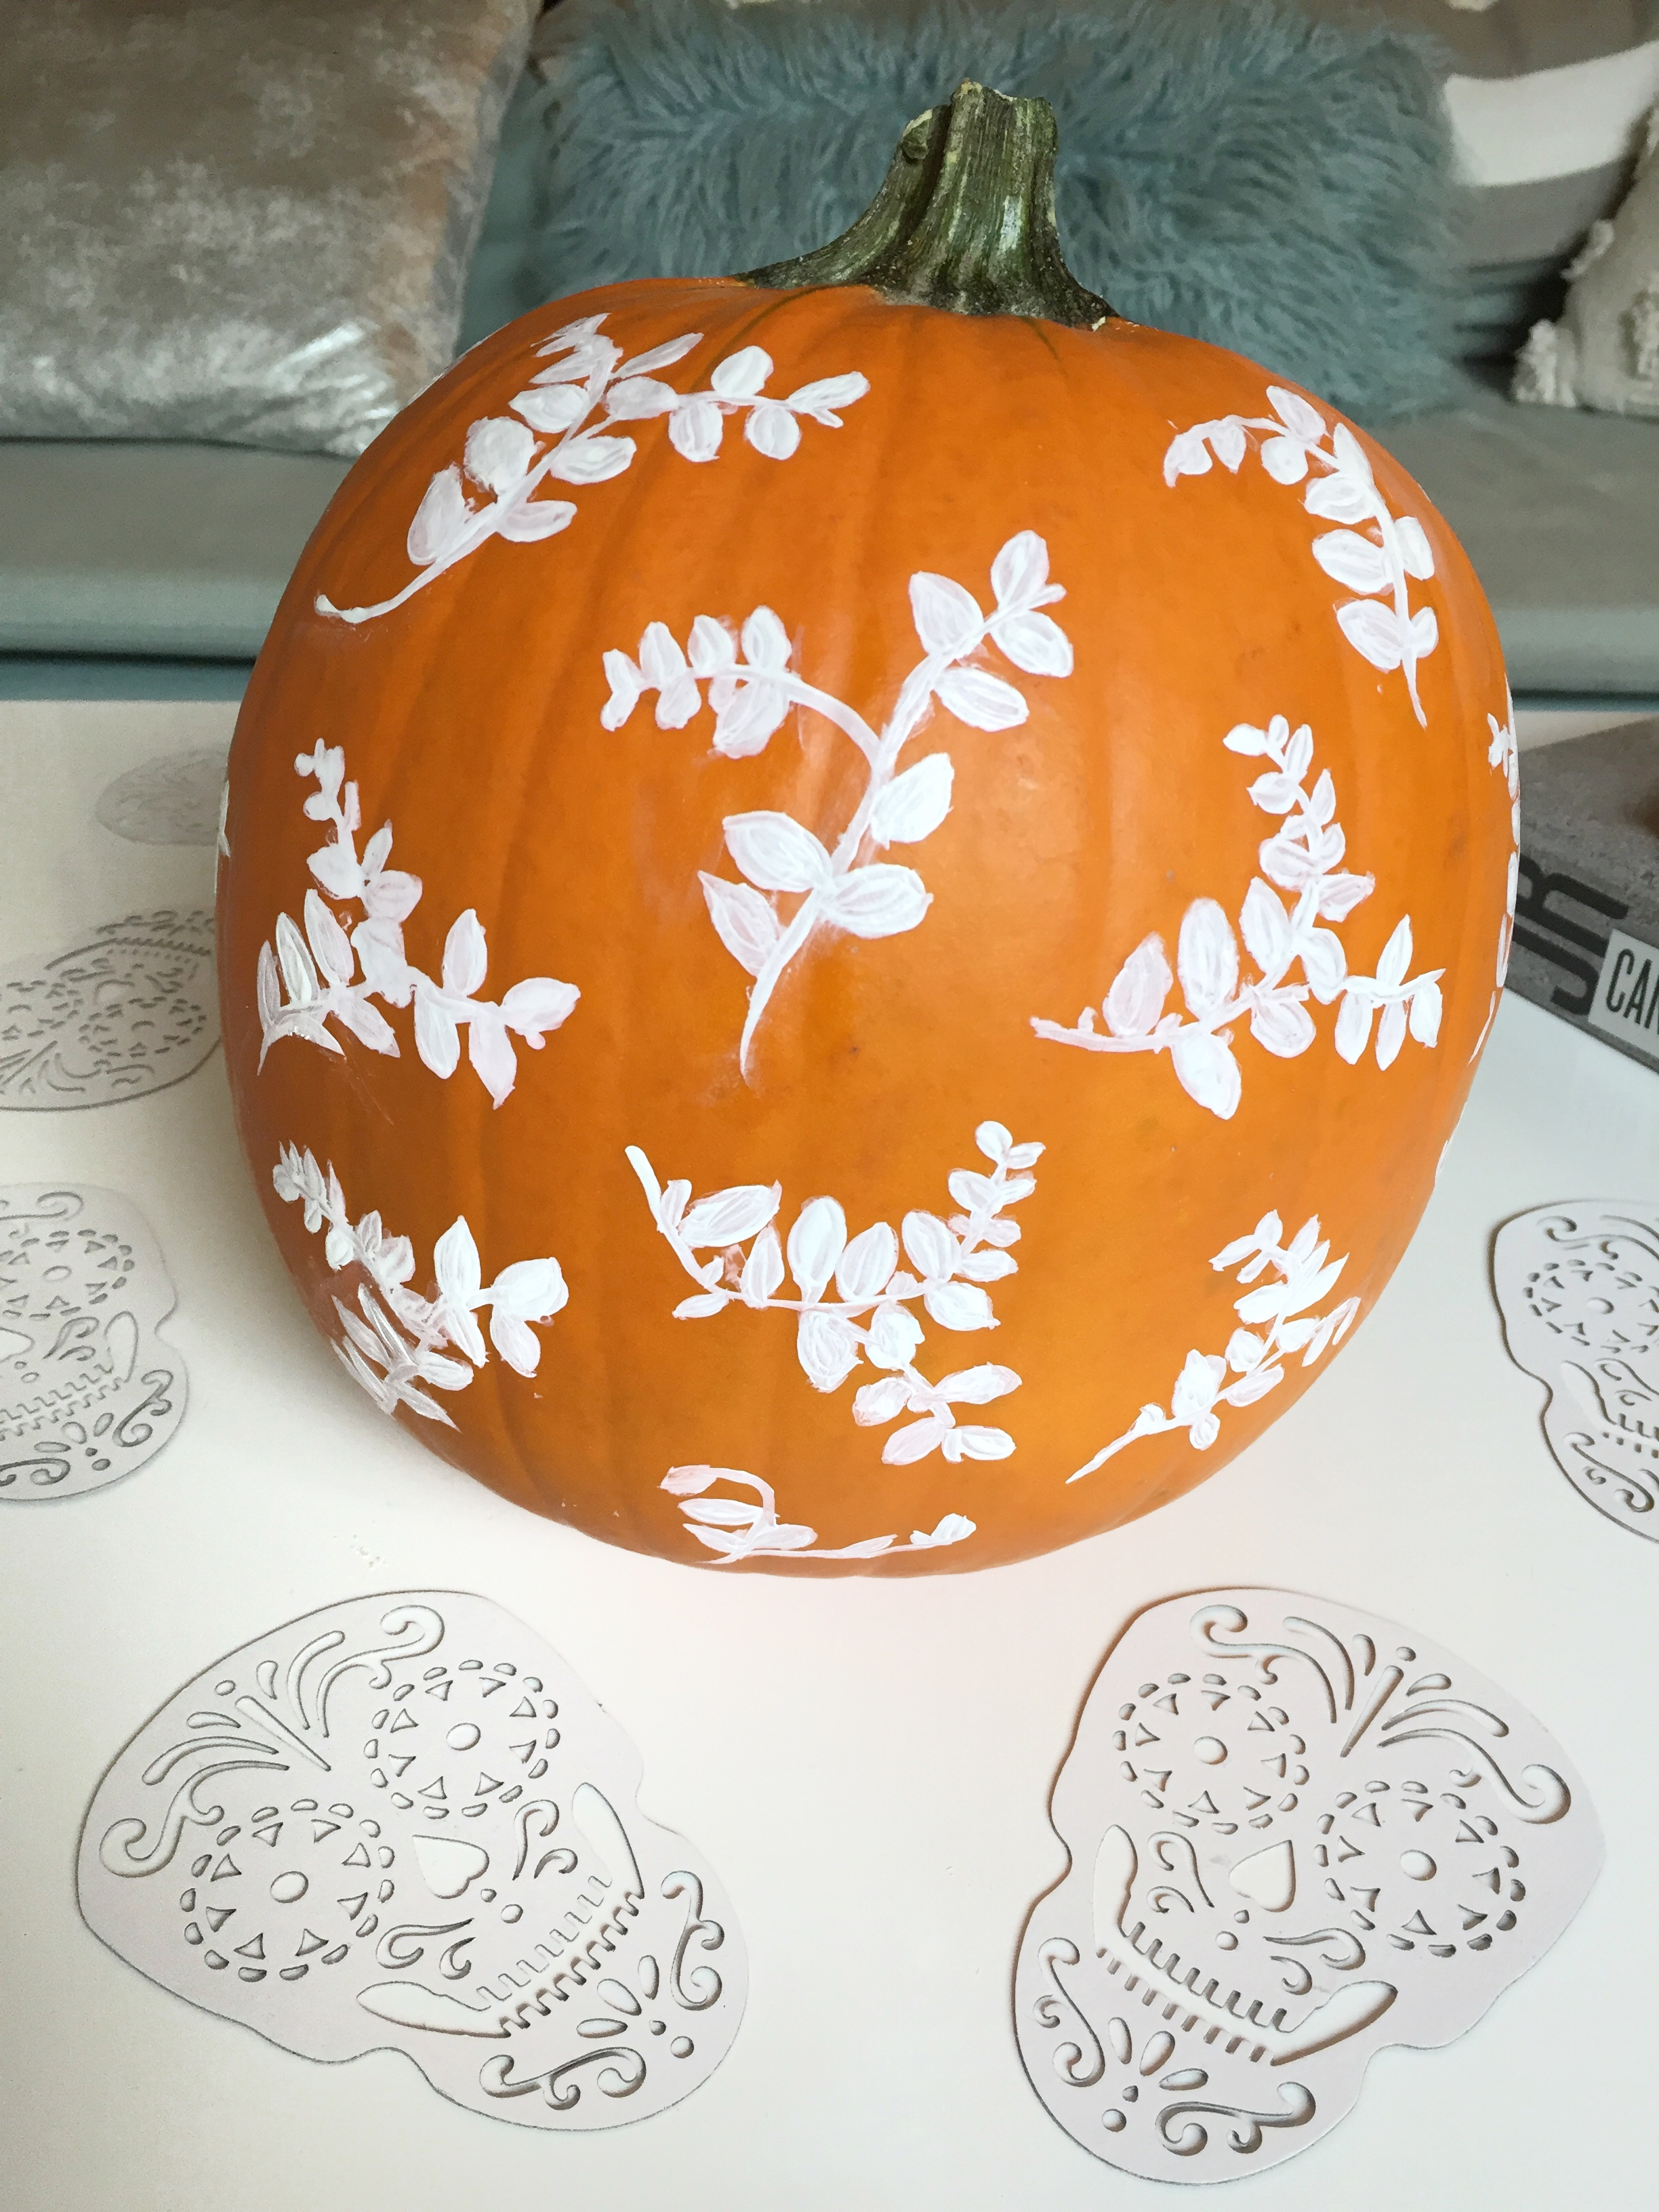 Leaf stamp, then free painted with white acrylic paint